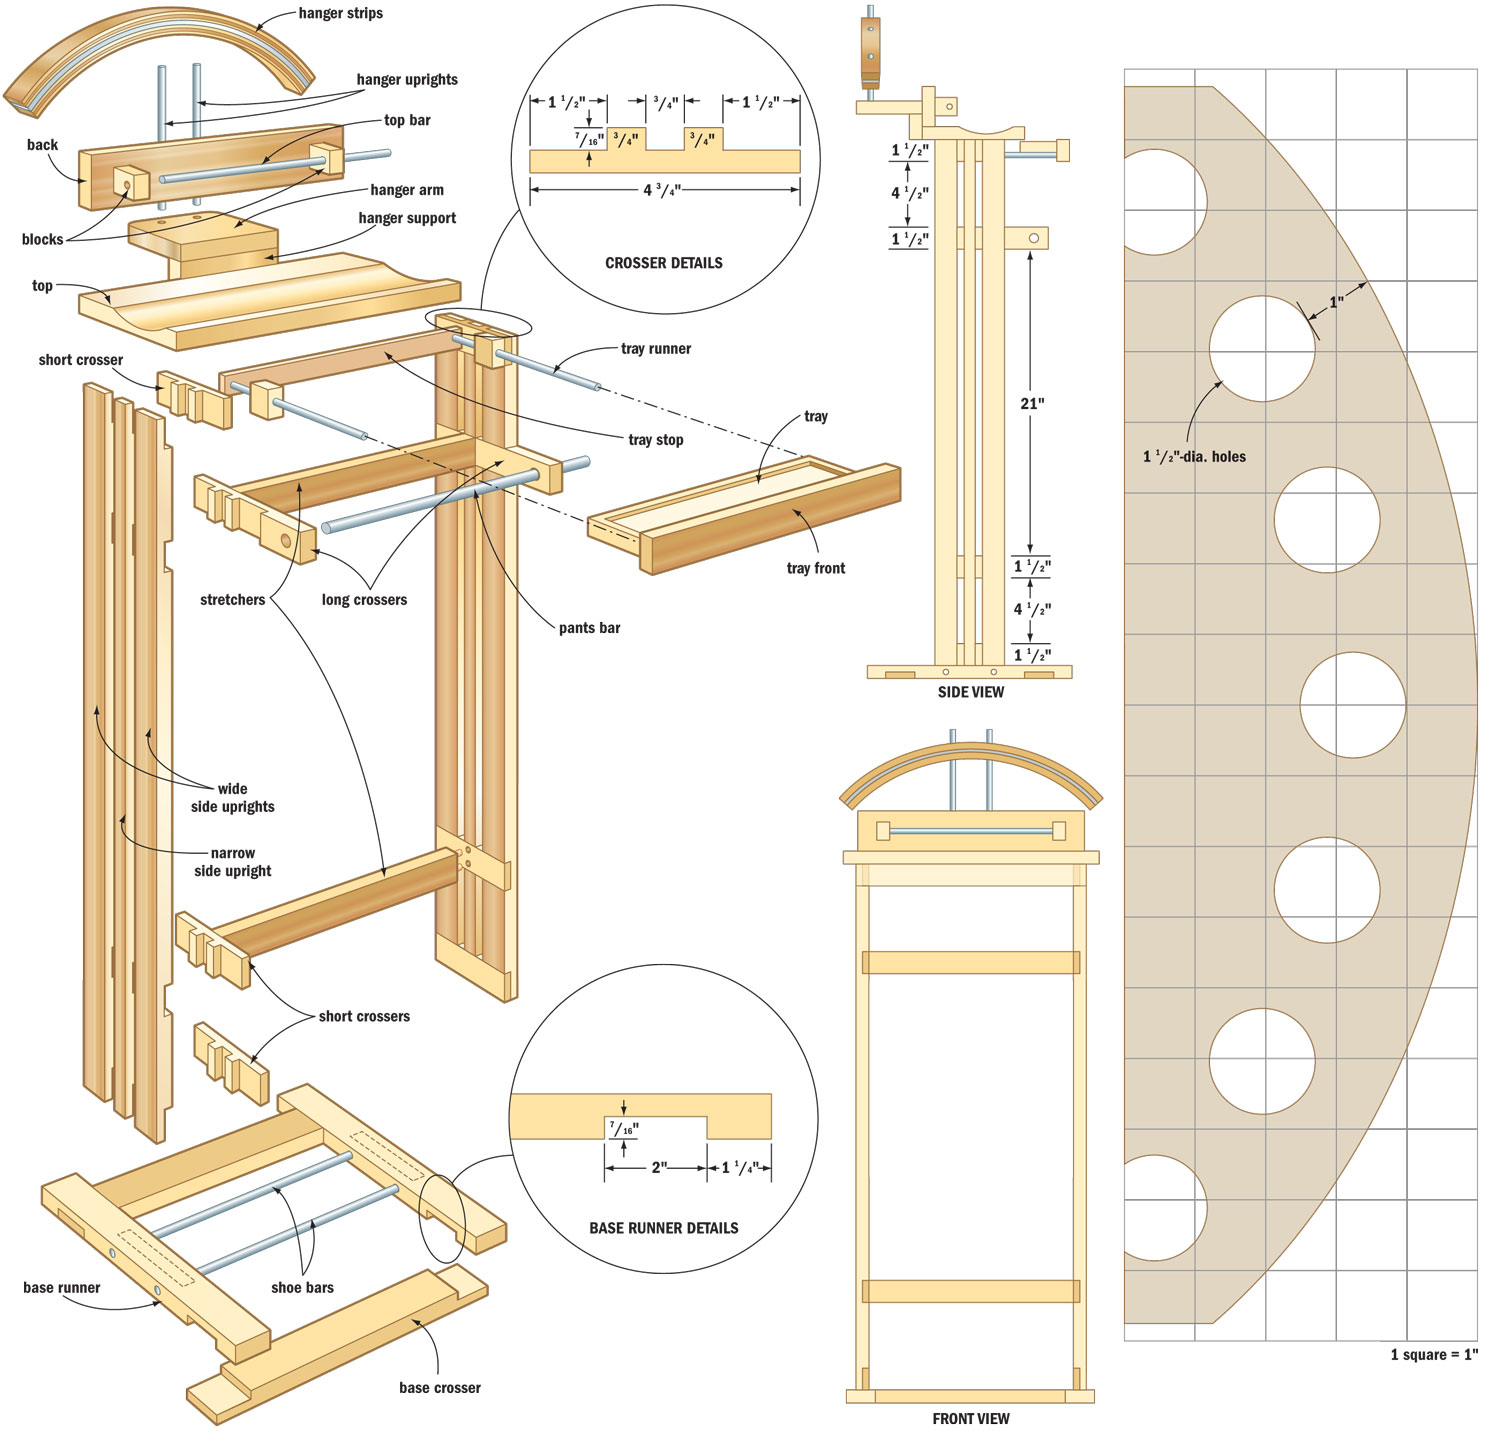 Valet stand woodworking plans - WoodShop Plans